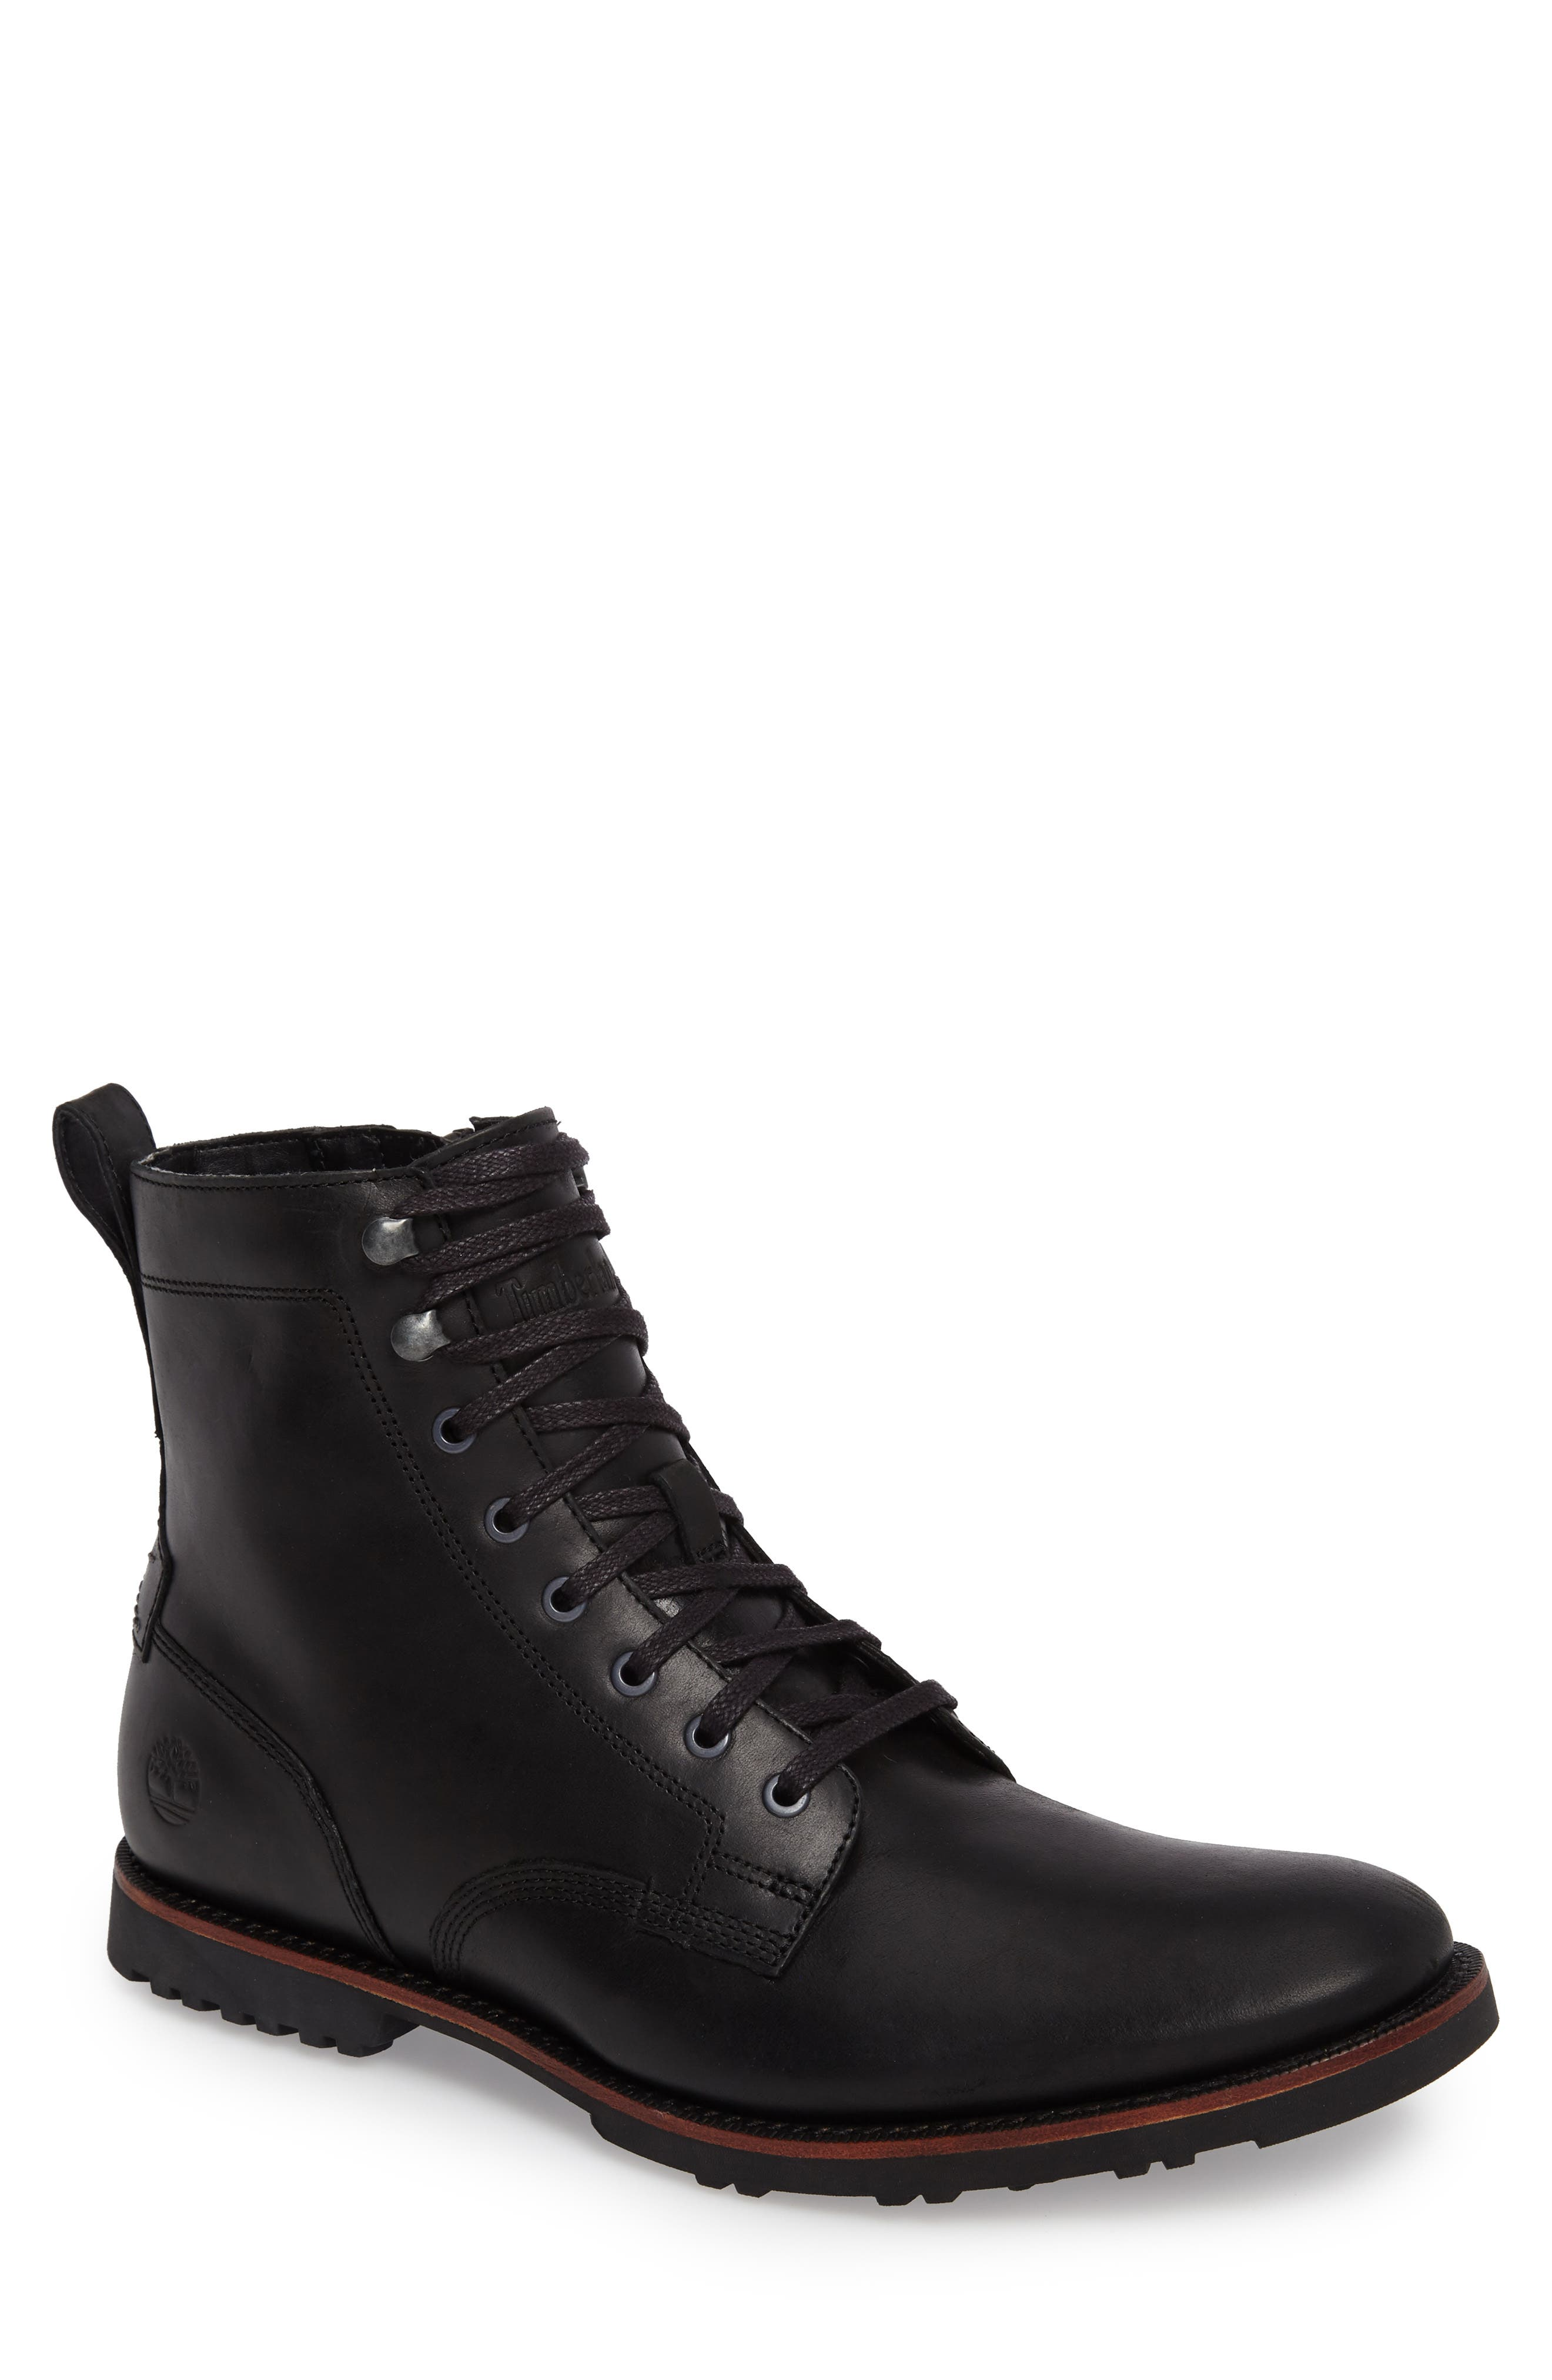 Alternate Image 1 Selected - Timberland Kendrick Side Zip Leather Boot (Men)